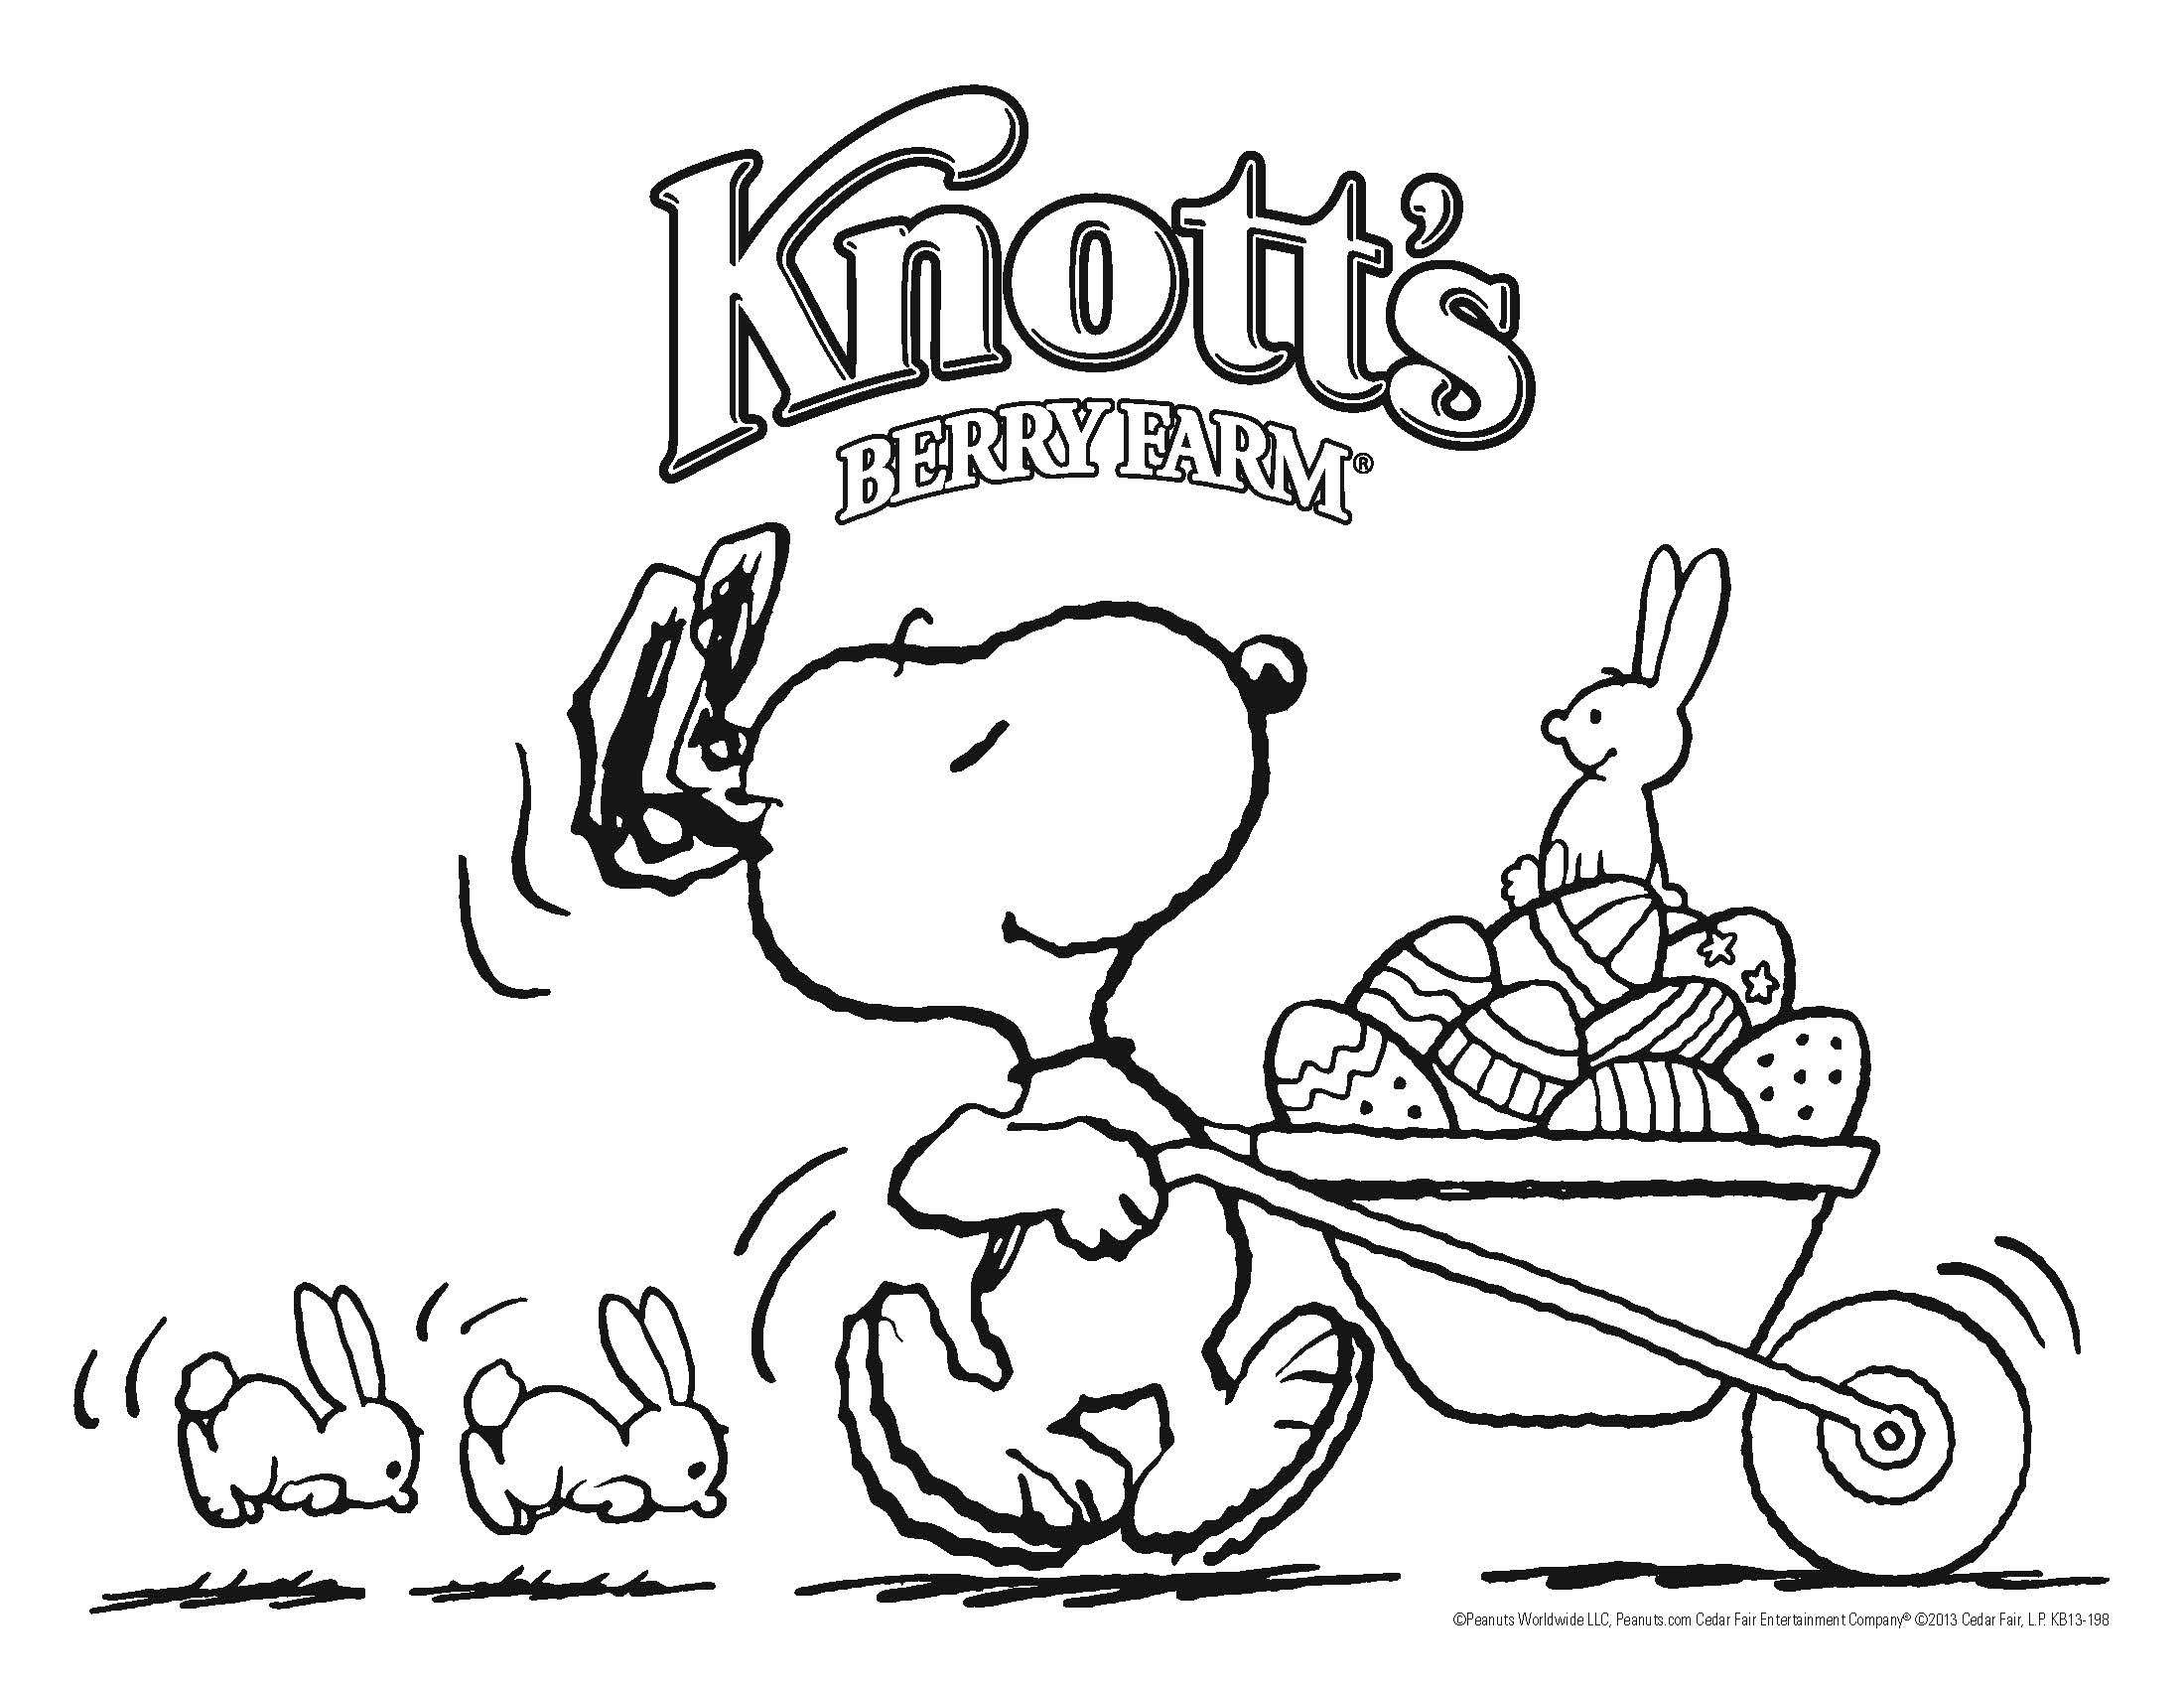 2200x1700 Snoopy Friends Coloring Pages Printable